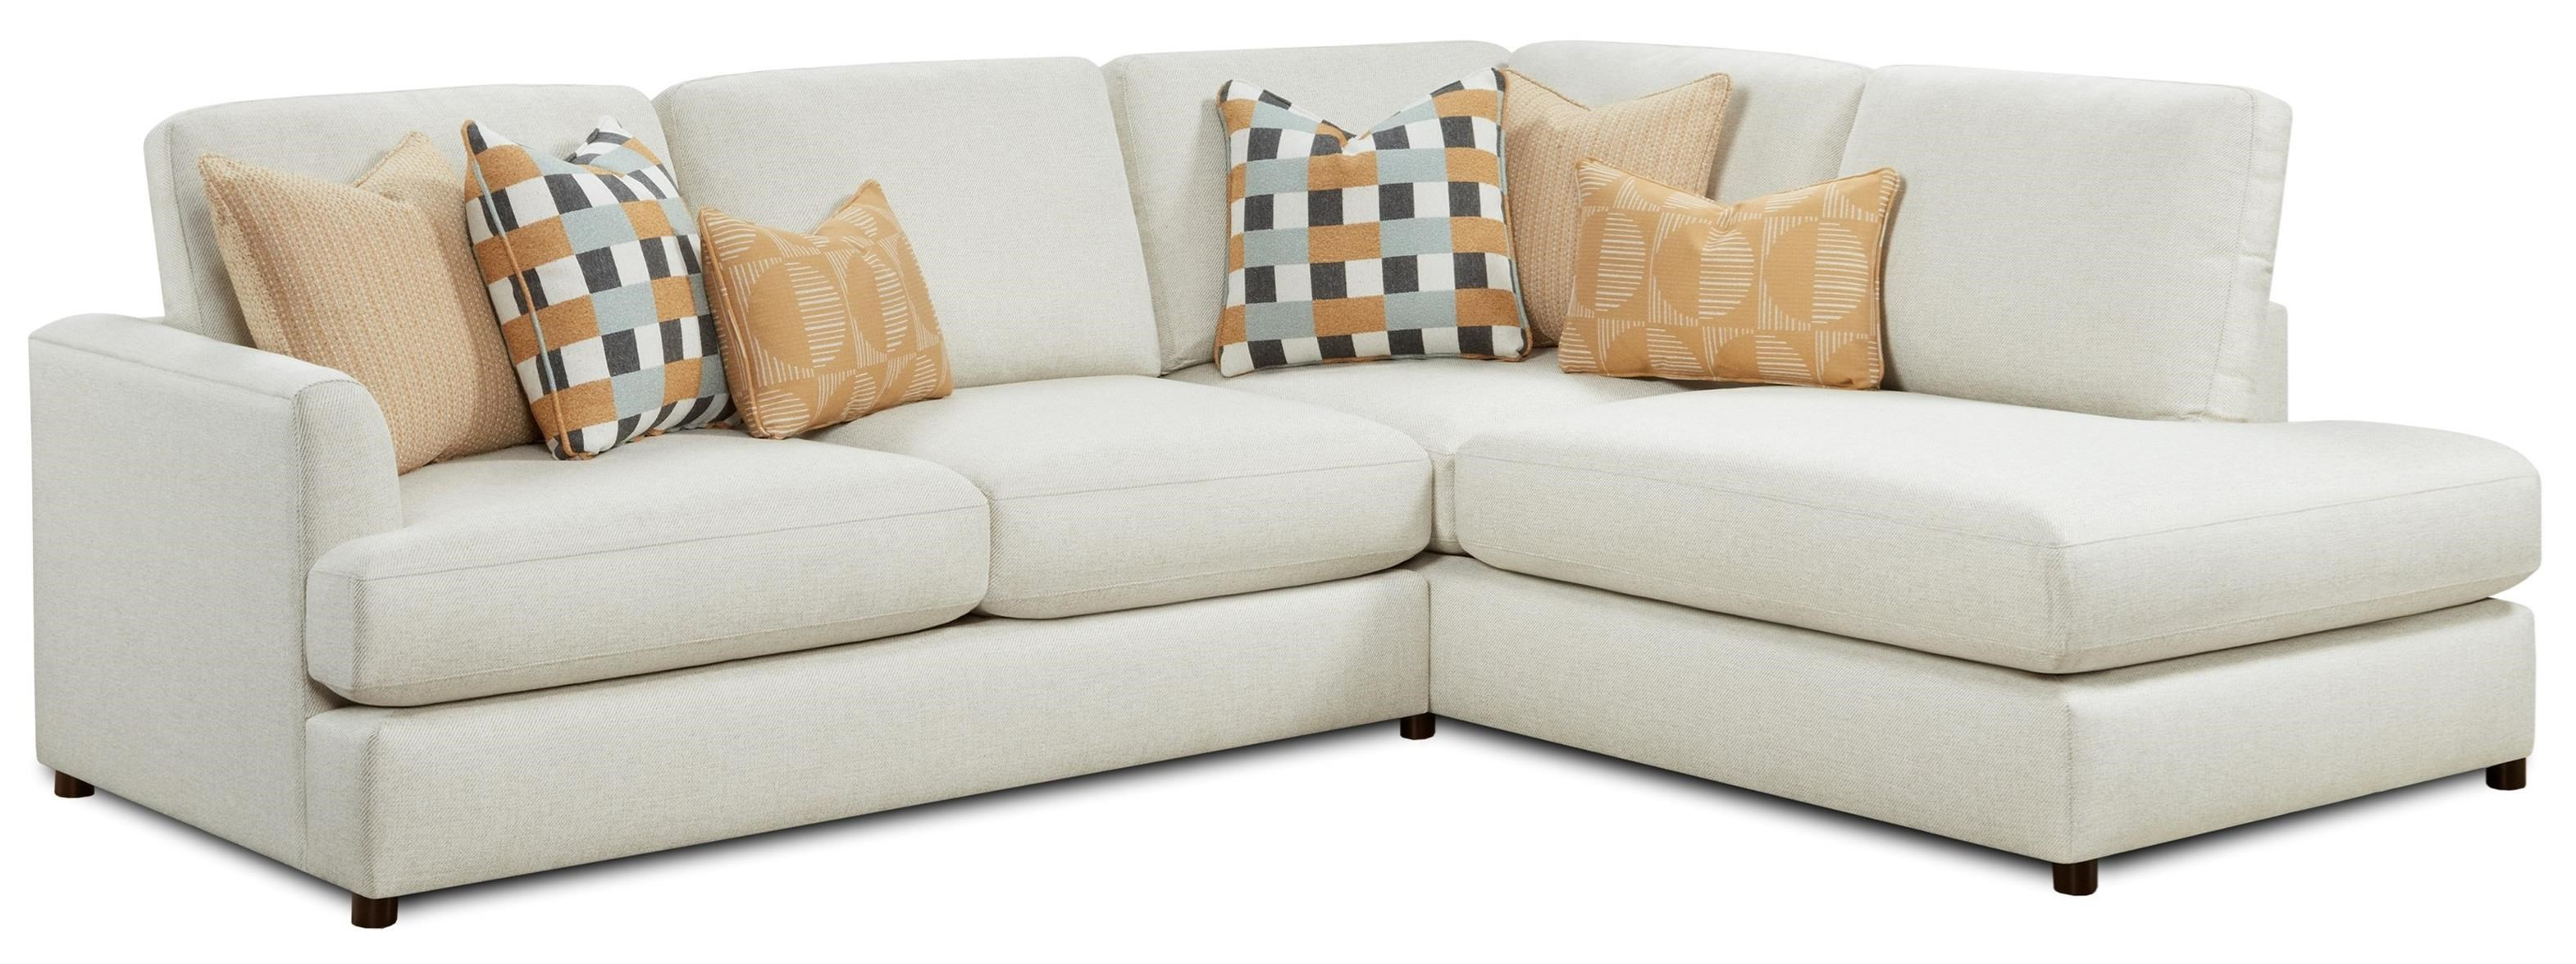 23-00 2-Piece Sectional with Chaise by Fusion Furniture at Prime Brothers Furniture